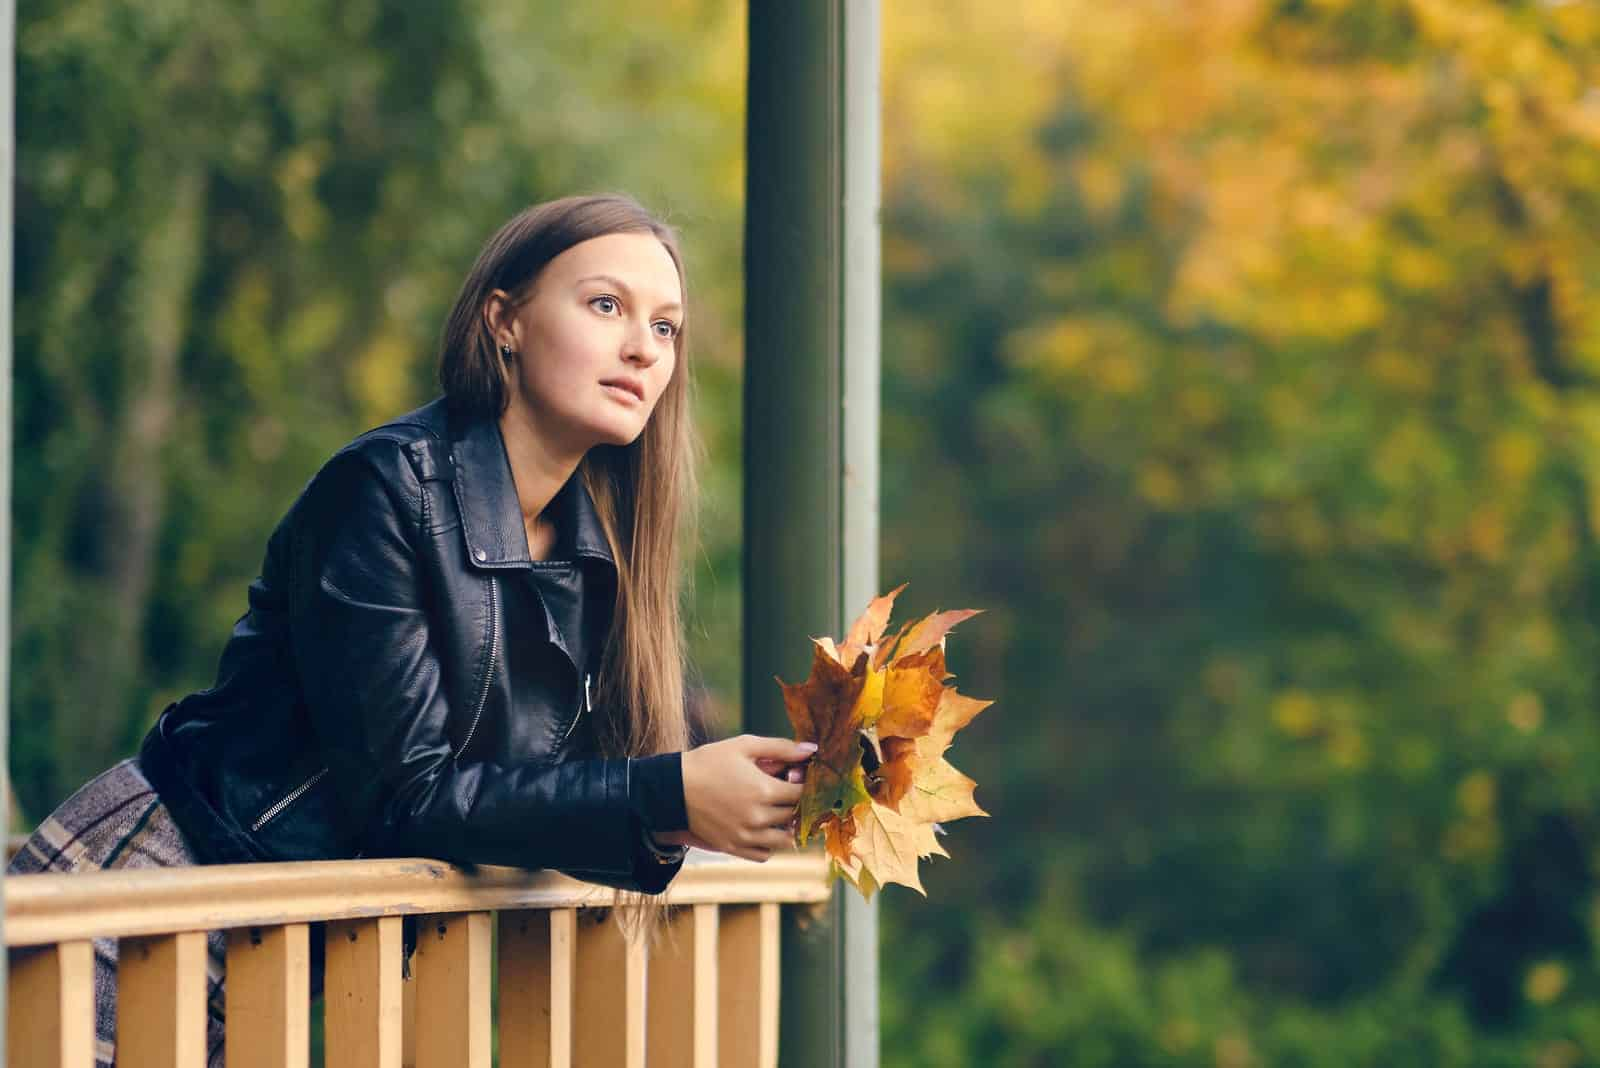 the woman stands on the terrace with leaves in her hands and thinks anxiously